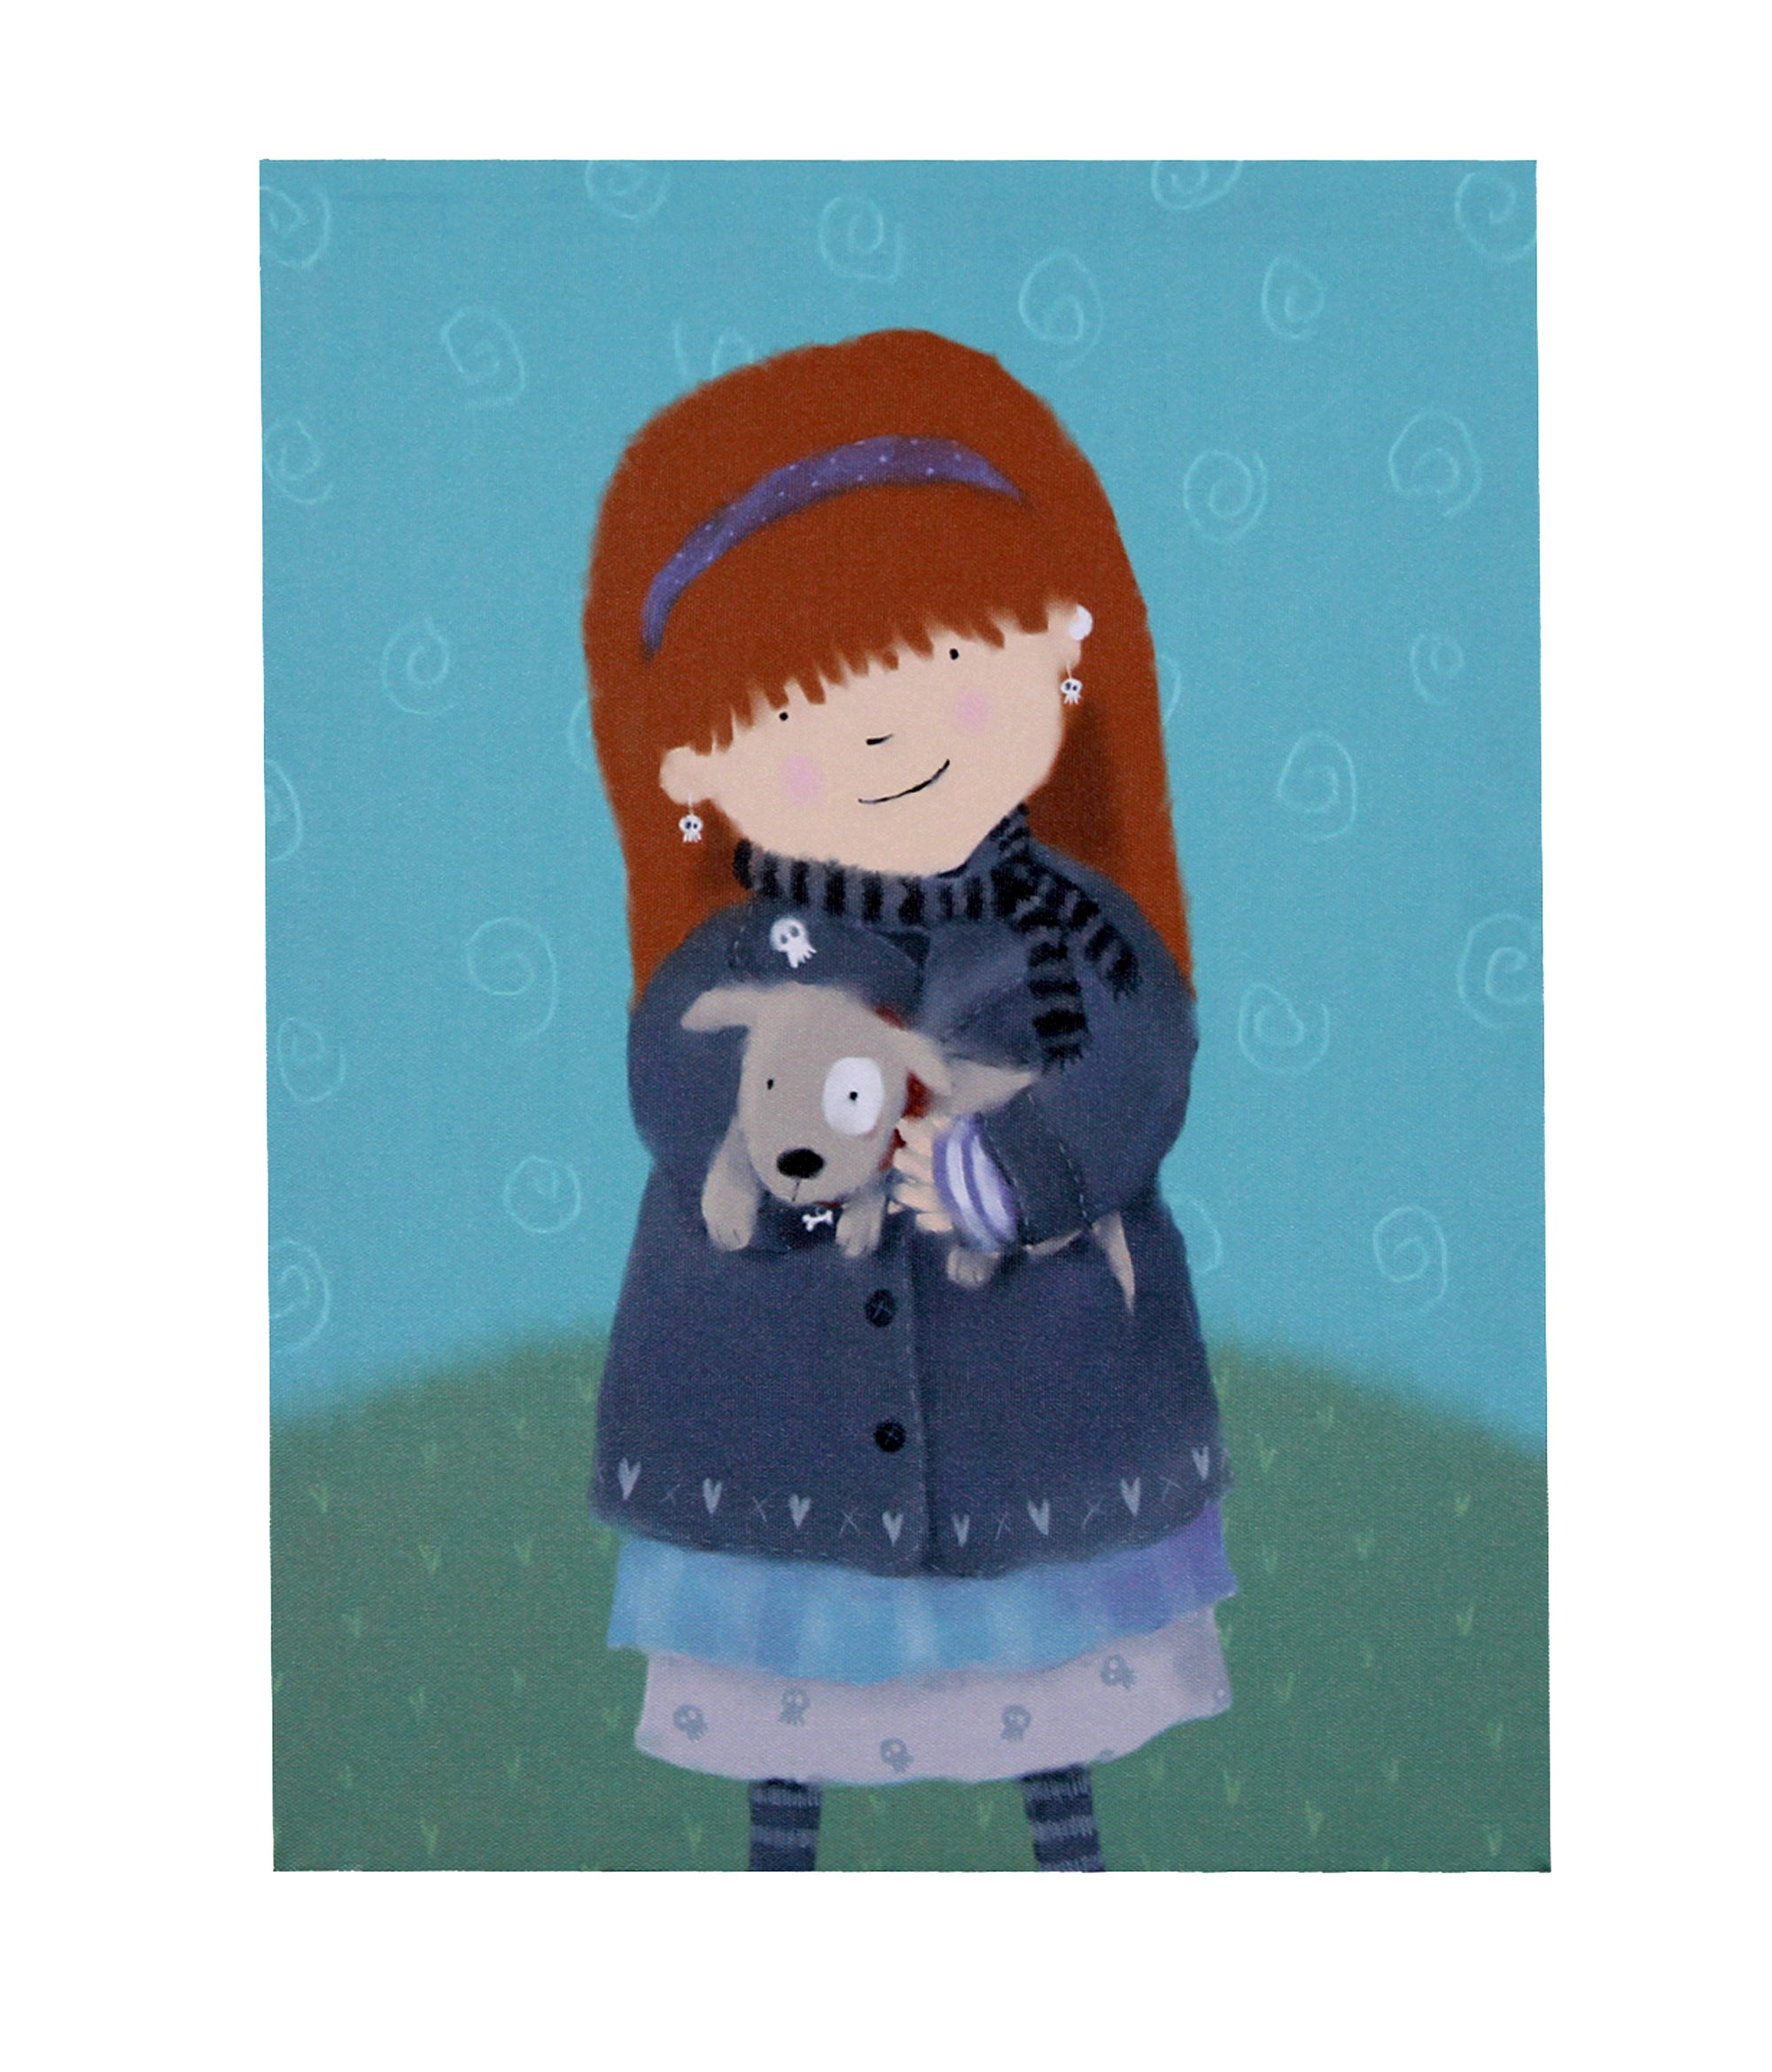 Artistic Britain Kids Beth with Dog Printed Canvas